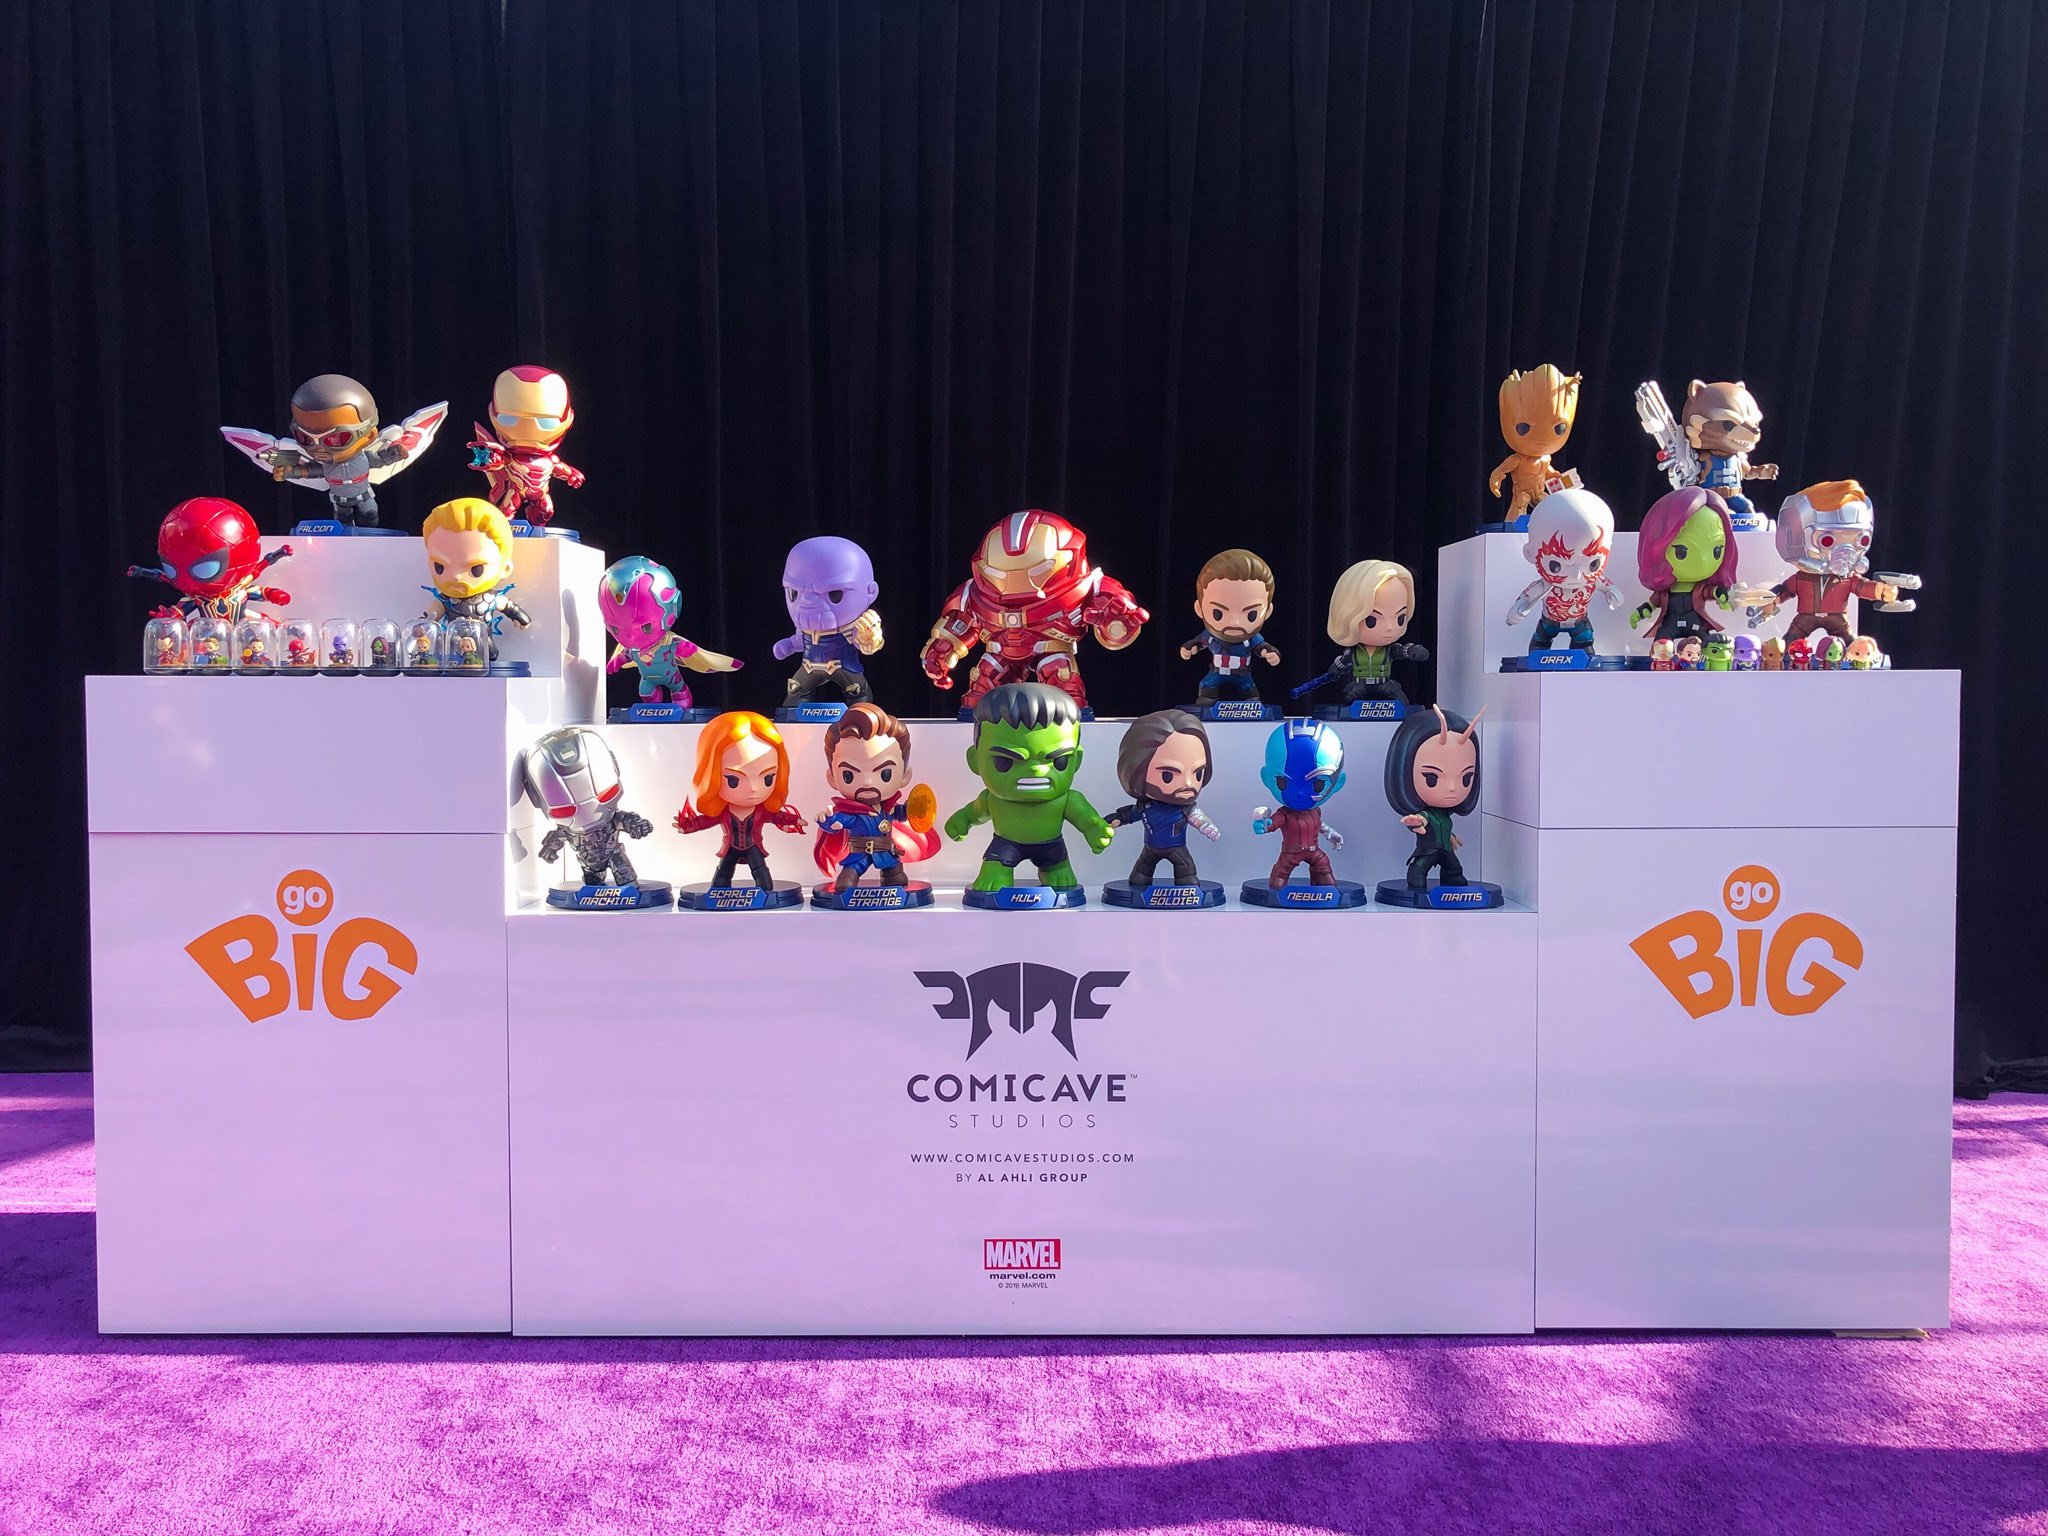 Revealed on the Marvel Studios' @Avengers: #InfinityWar red carpet, the latest collectibles from @ComicaveStudios! https://t.co/V8nwHIpORM